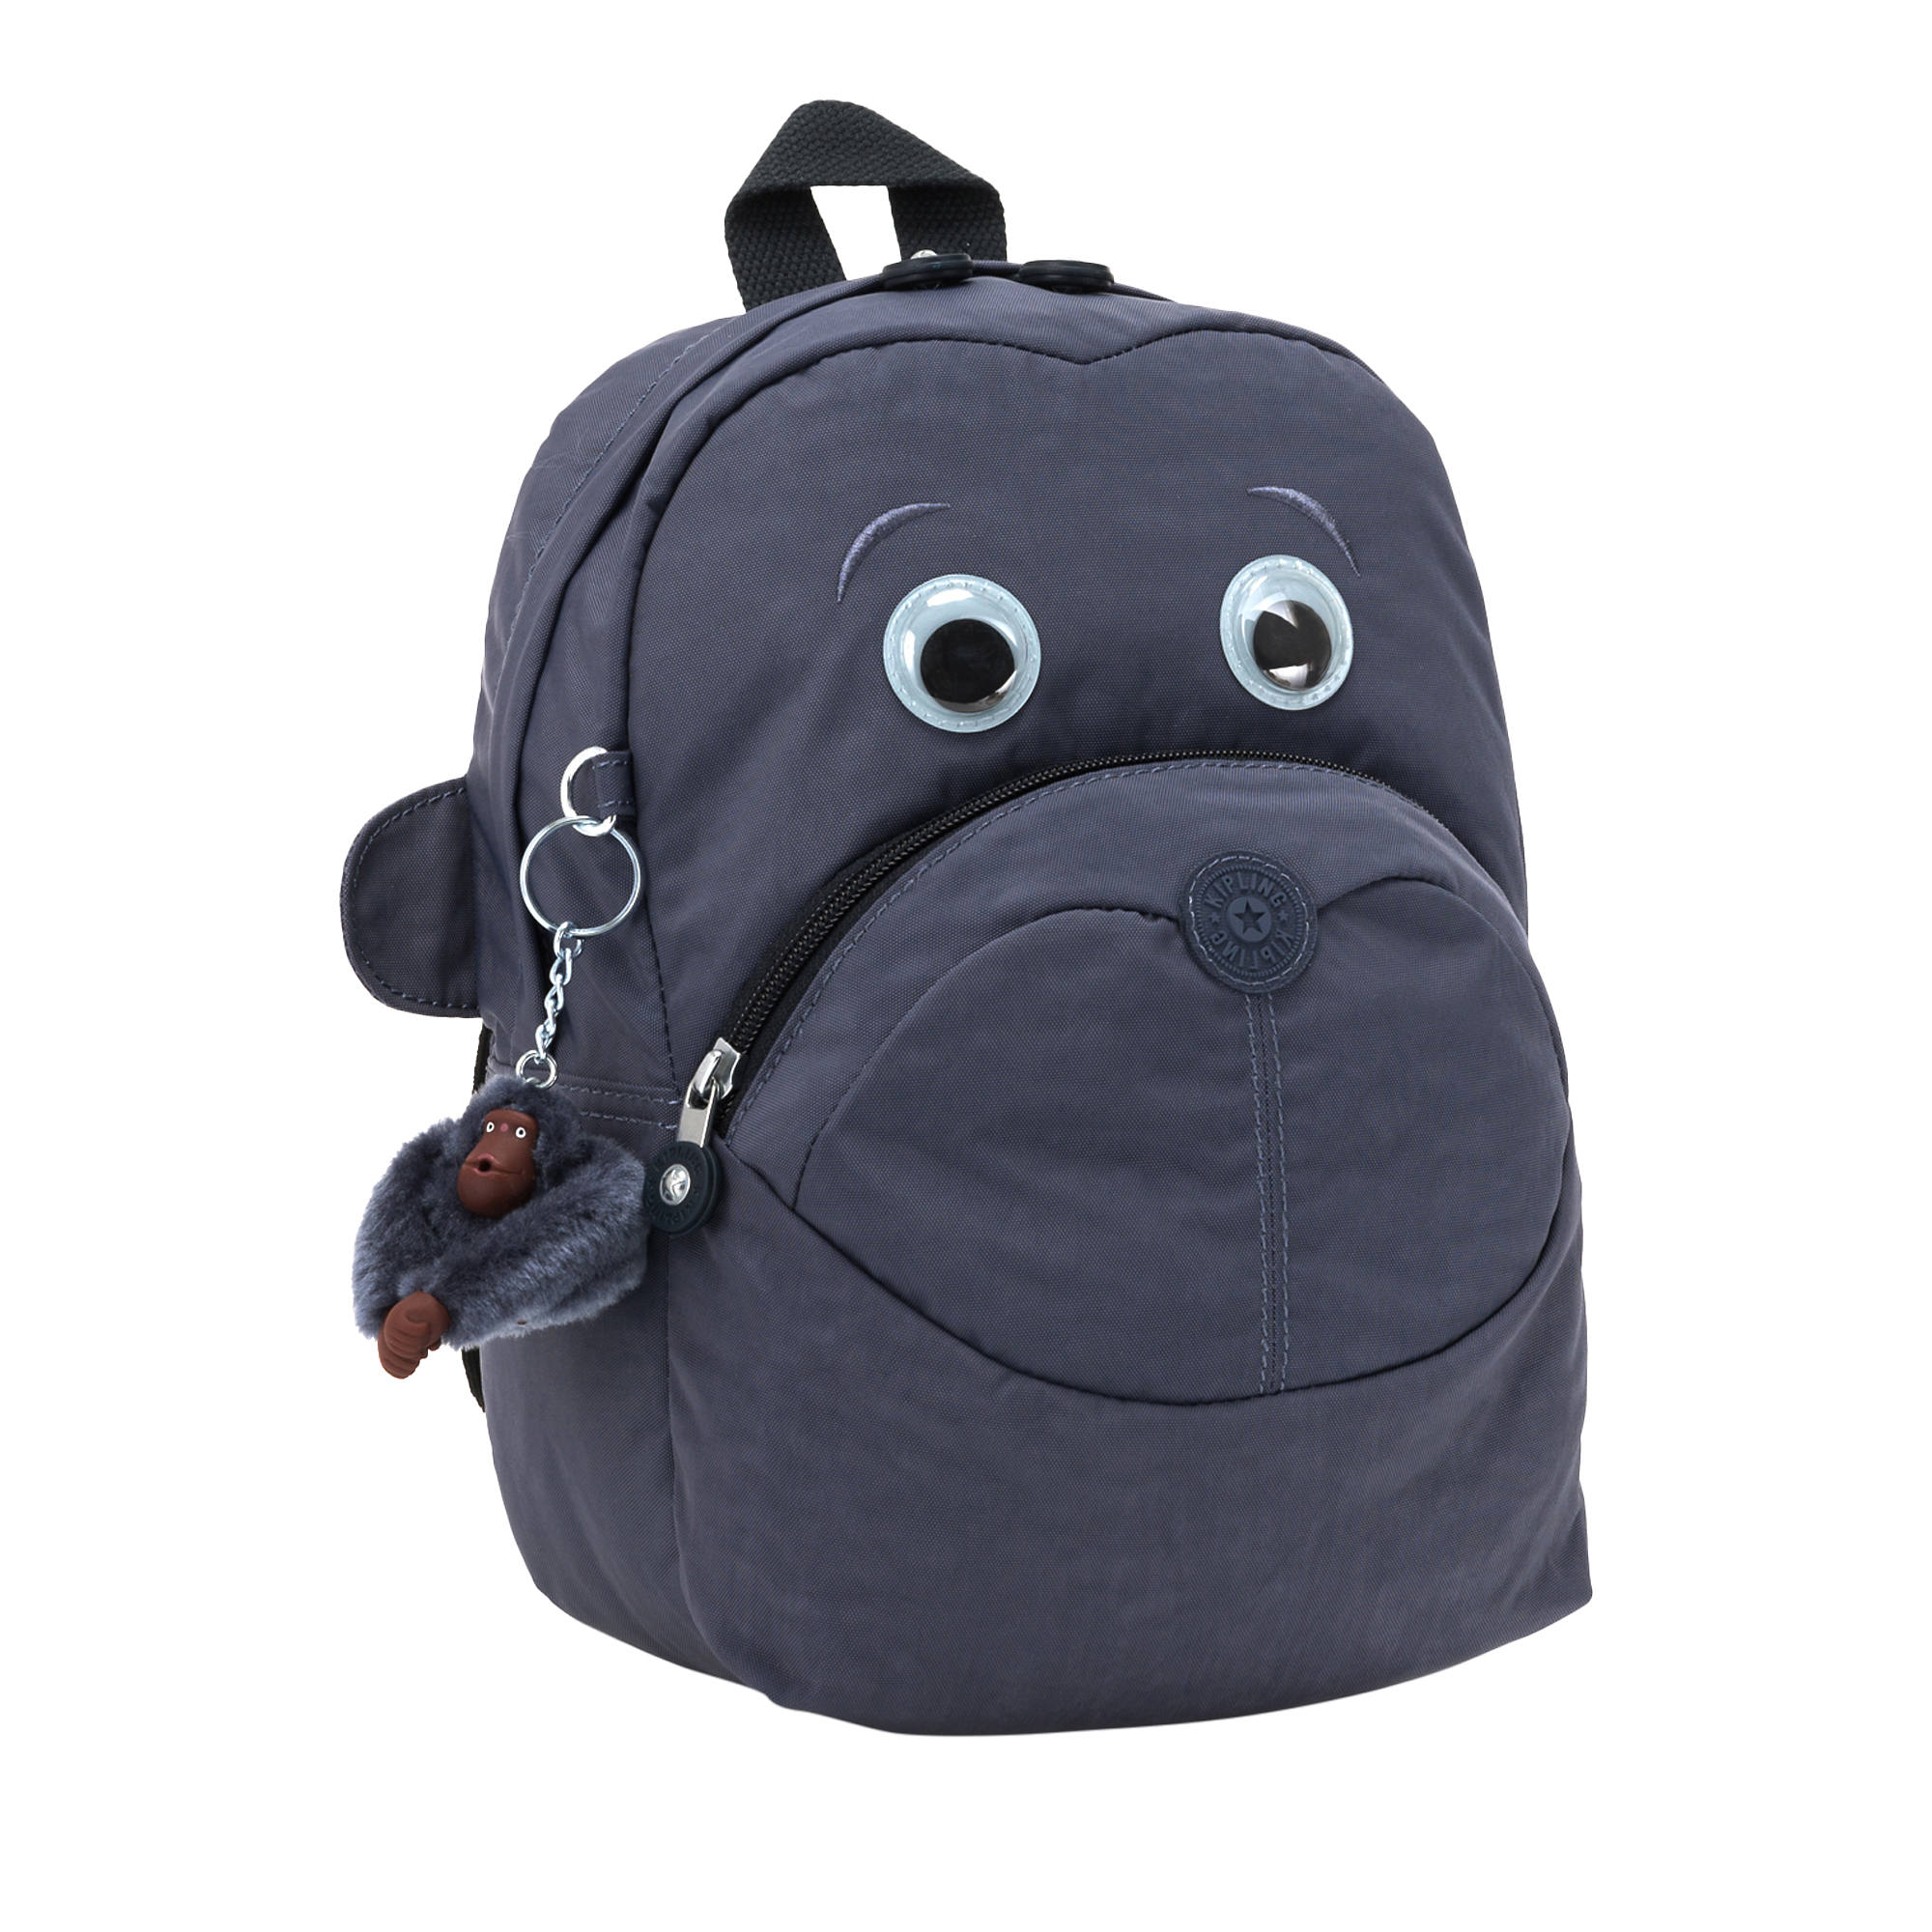 low priced cheap prices 50% off Details about Kipling Faster Kids Small Printed Backpack